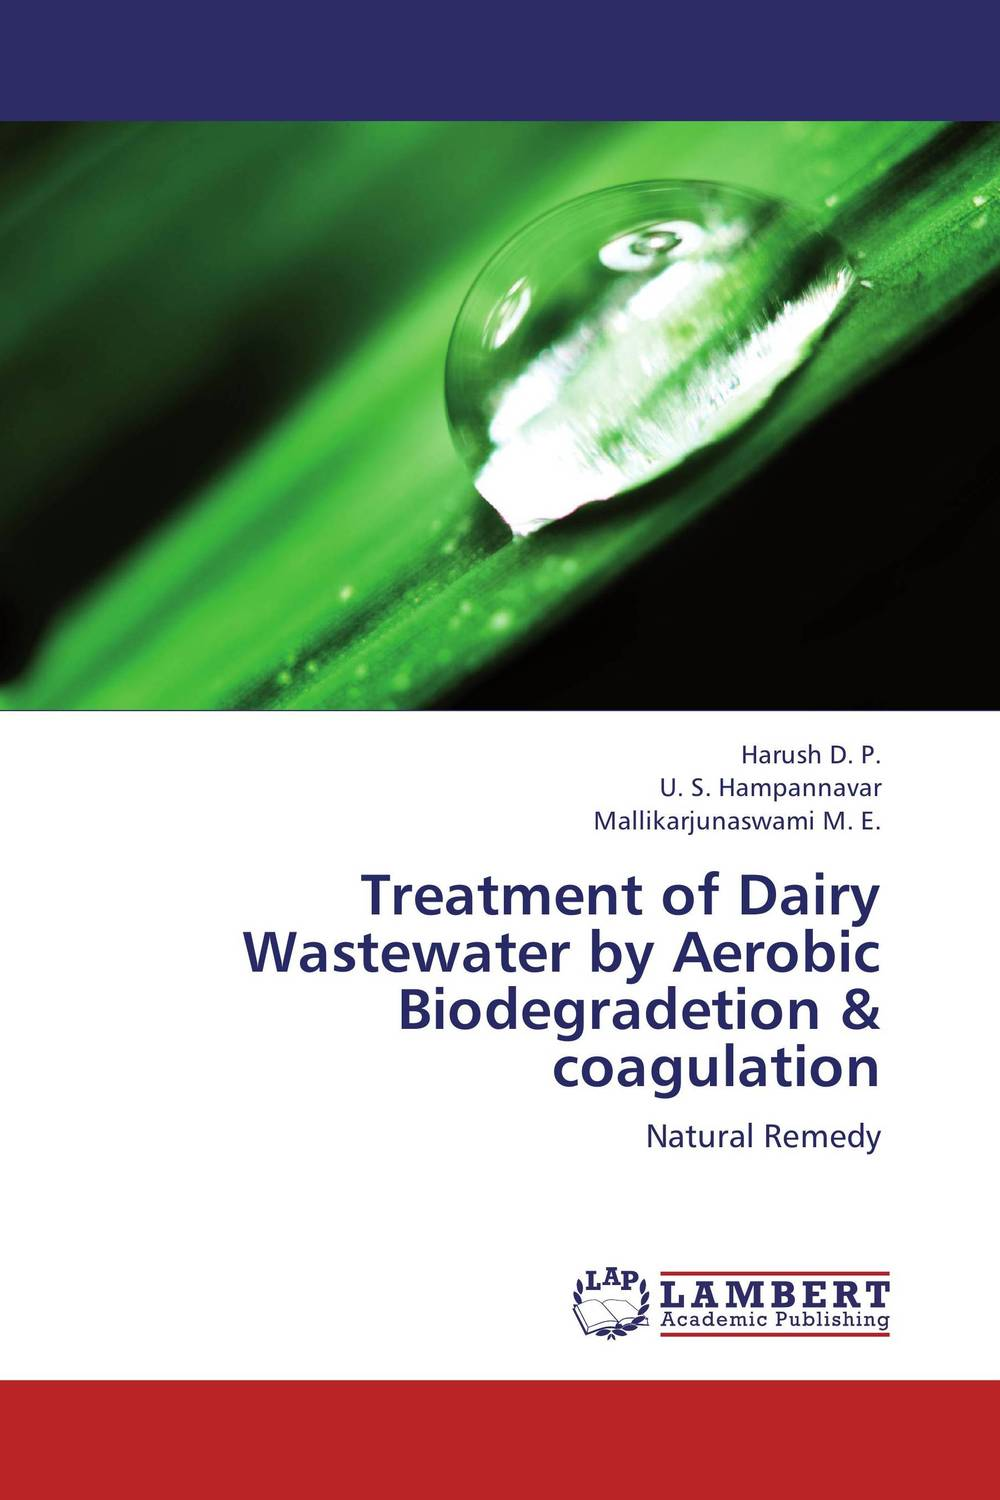 Treatment of Dairy Wastewater by Aerobic Biodegradetion & coagulation found in brooklyn